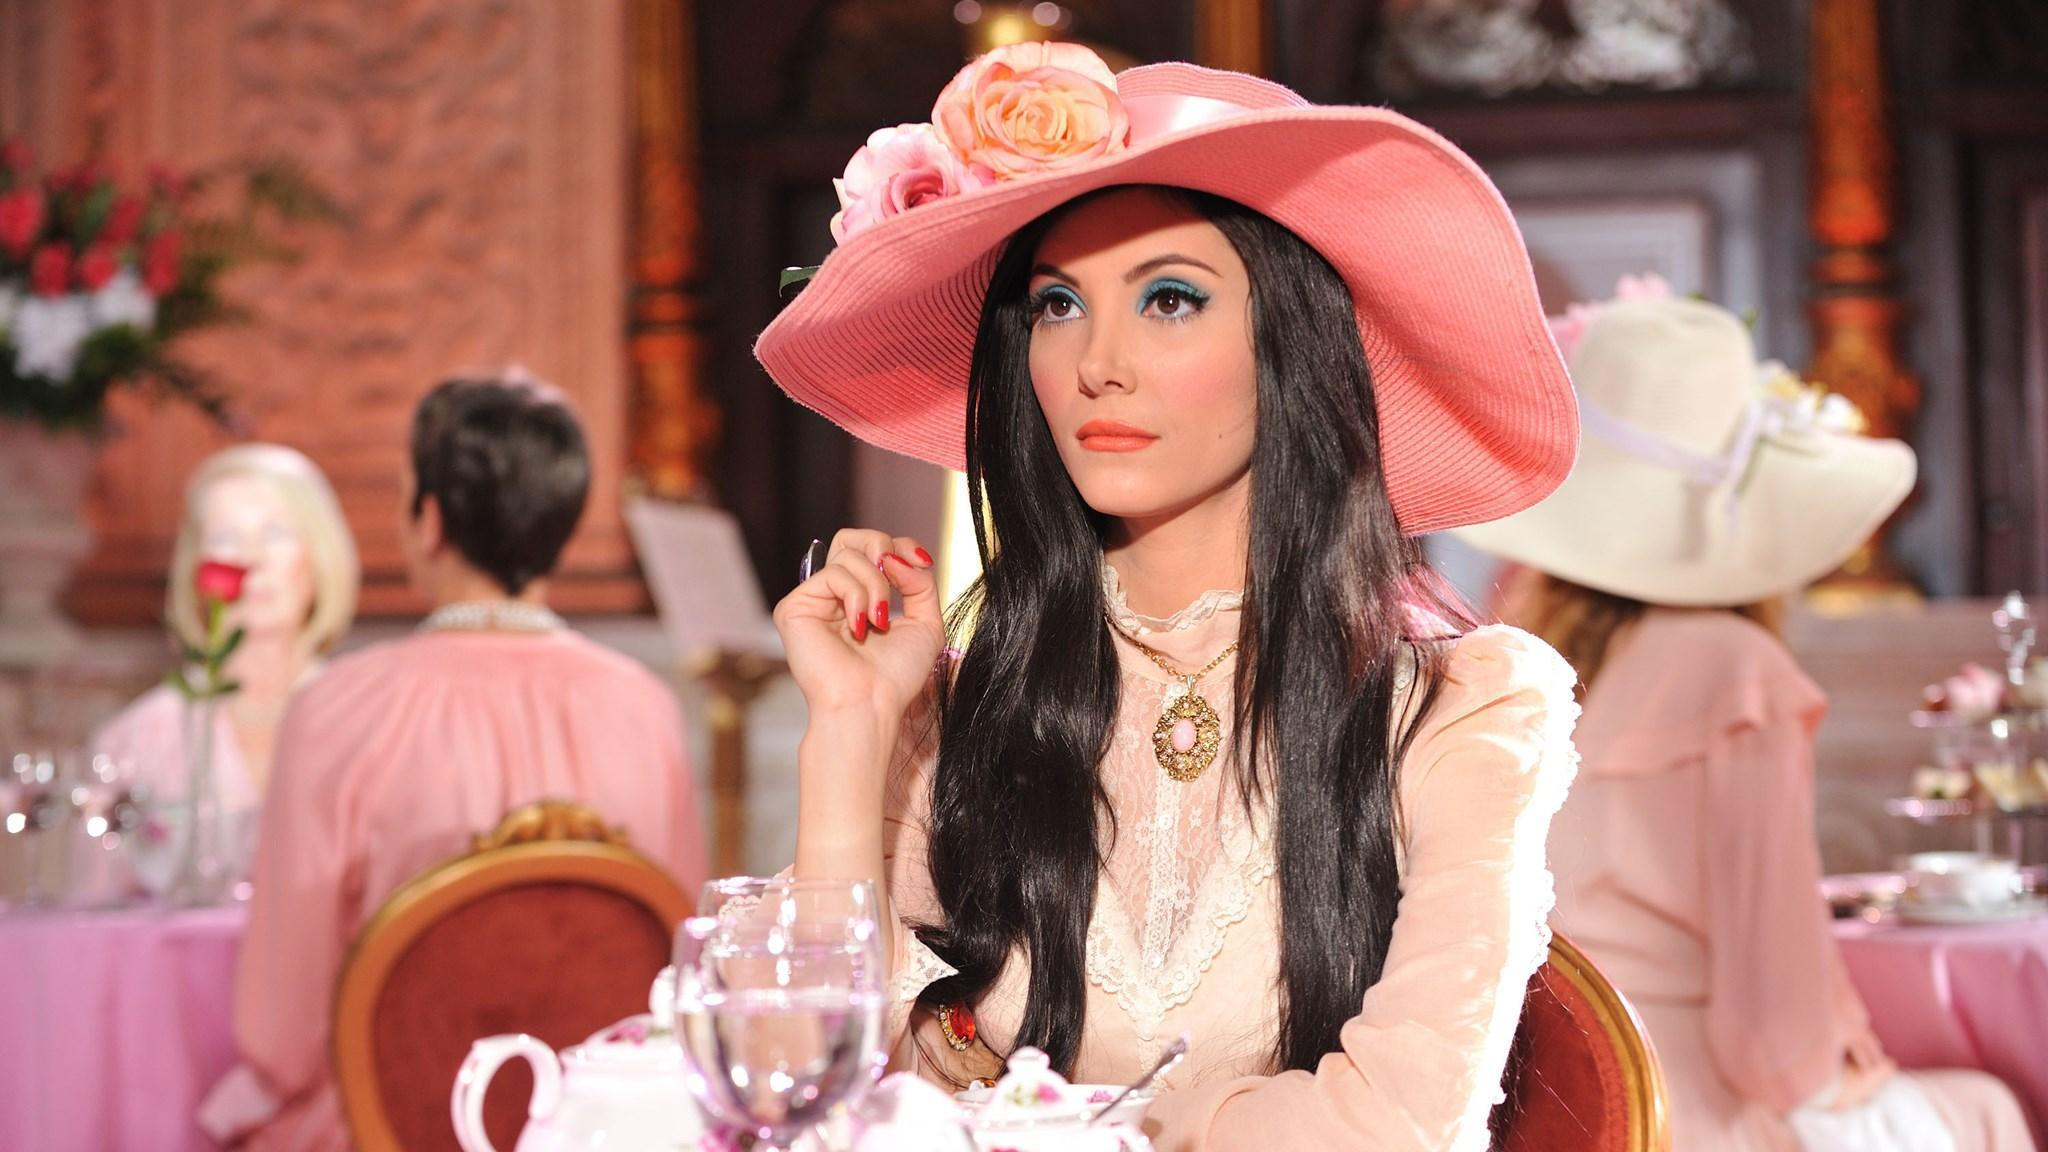 The Love Witch And Witchcrafts Appeal In The Era Of Trump The